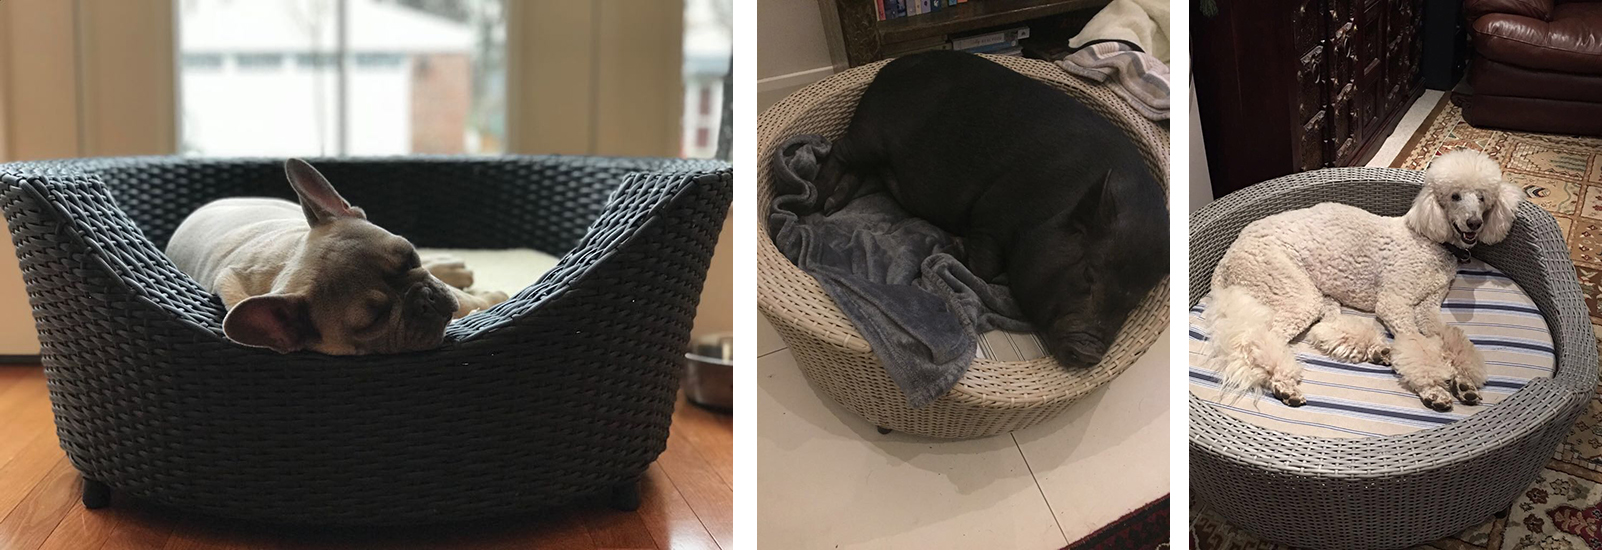 Dogs and their Baskets